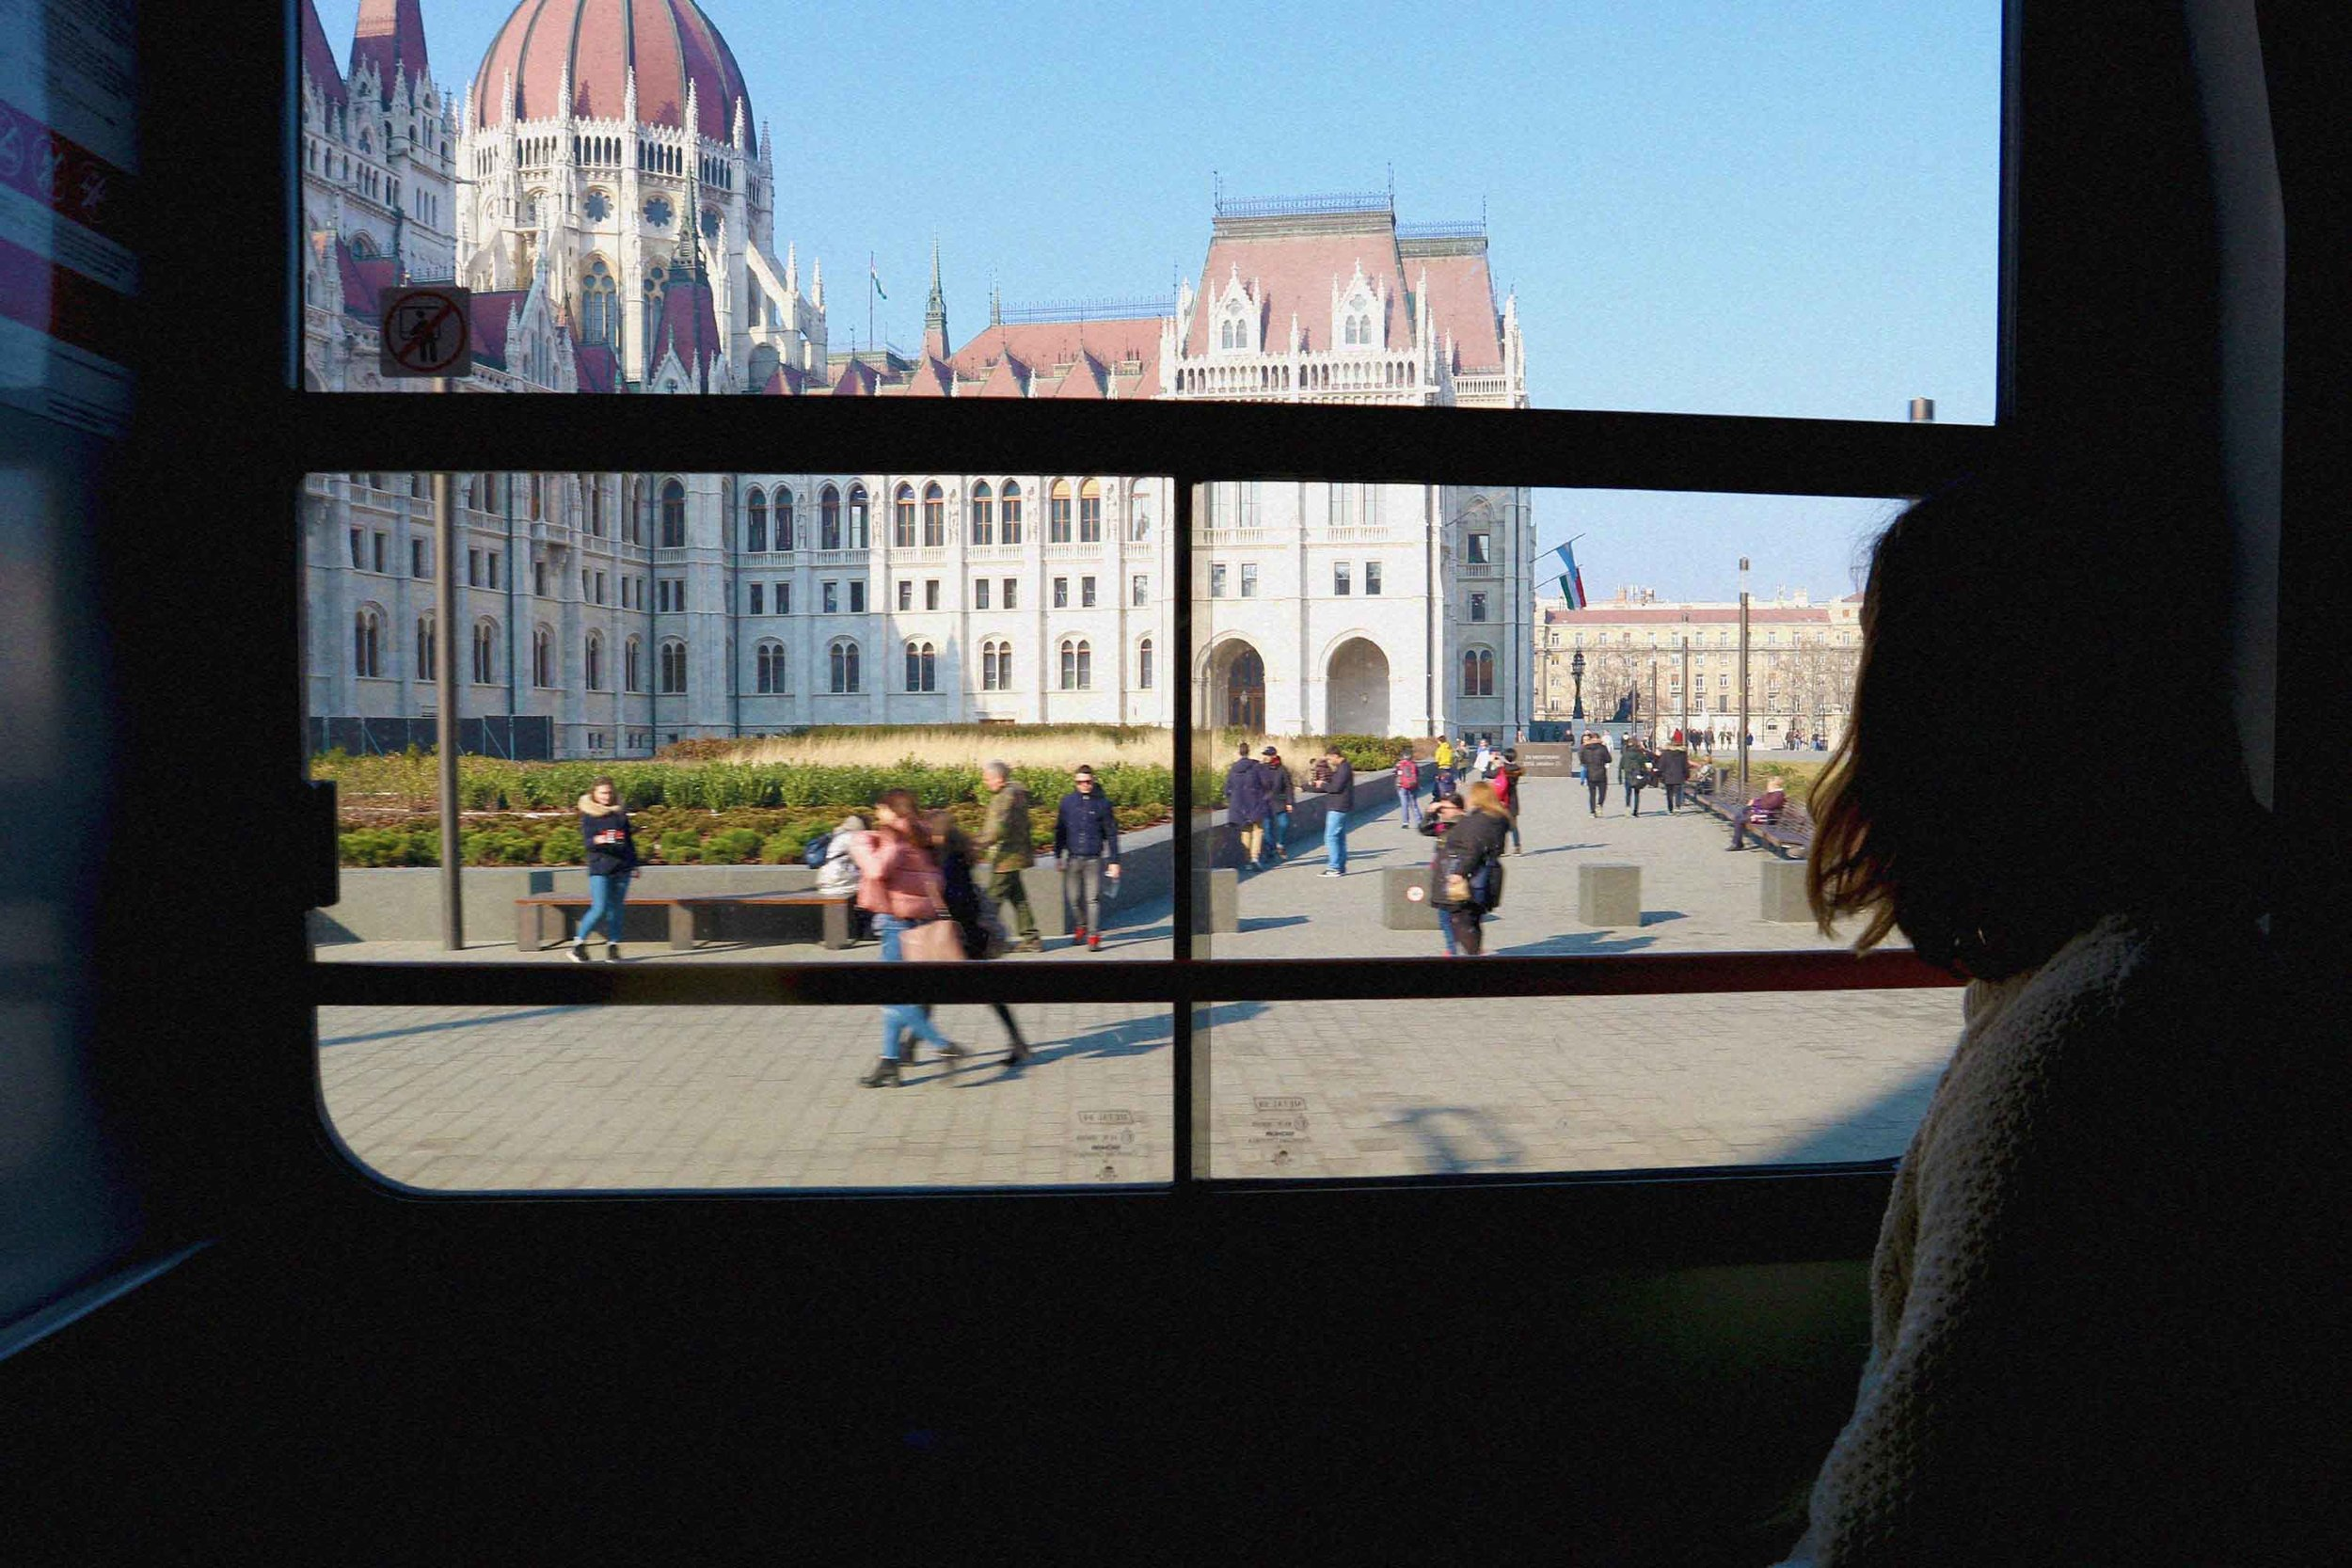 The view from the number 2 tram window of the Parliament building